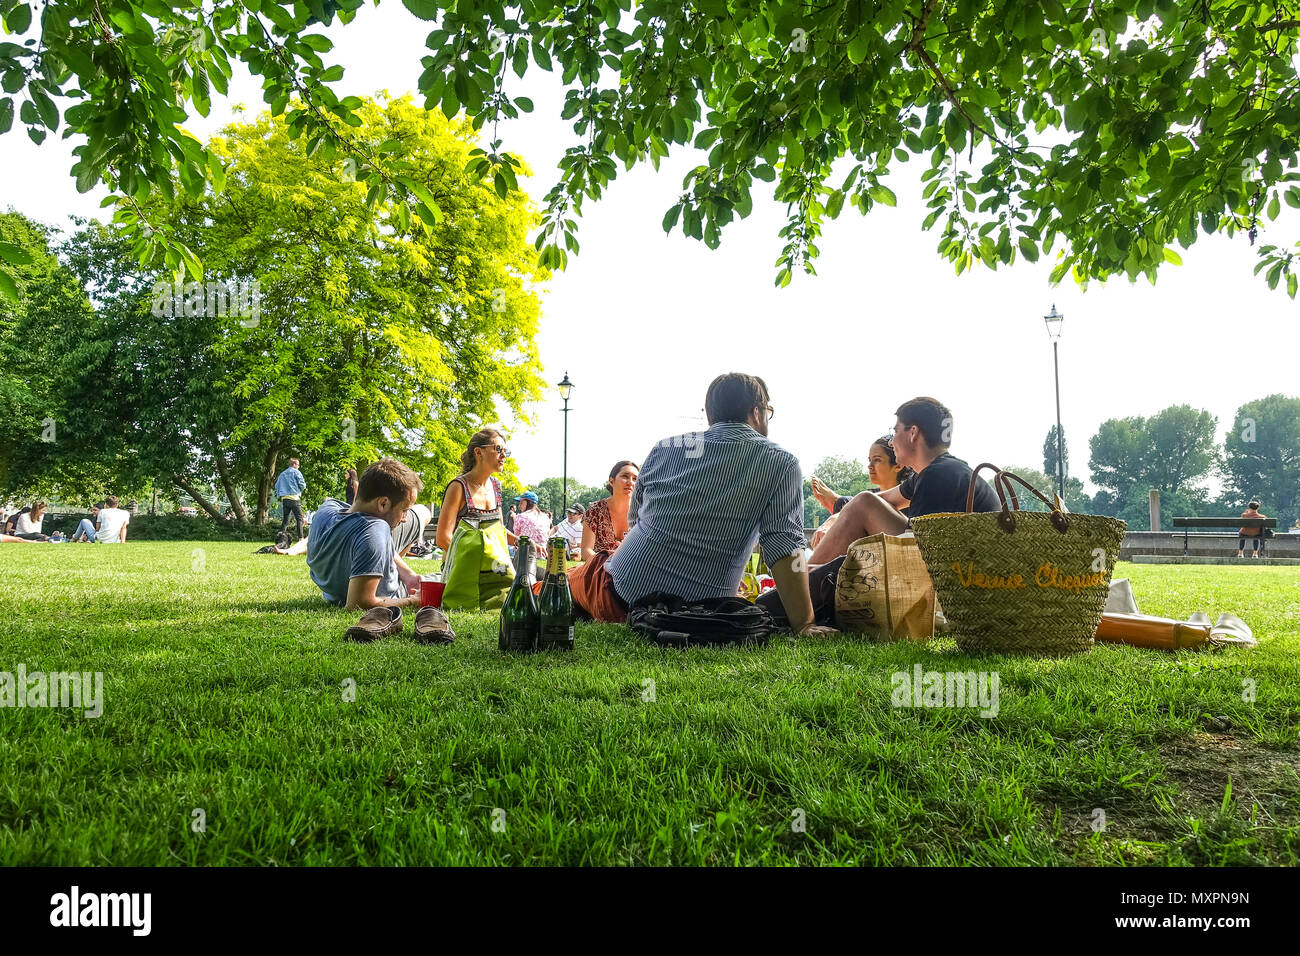 Friends enjoy the good weather and have a picnic in the park at Furnival Gardens at Hammersmith in London, UK Stock Photo